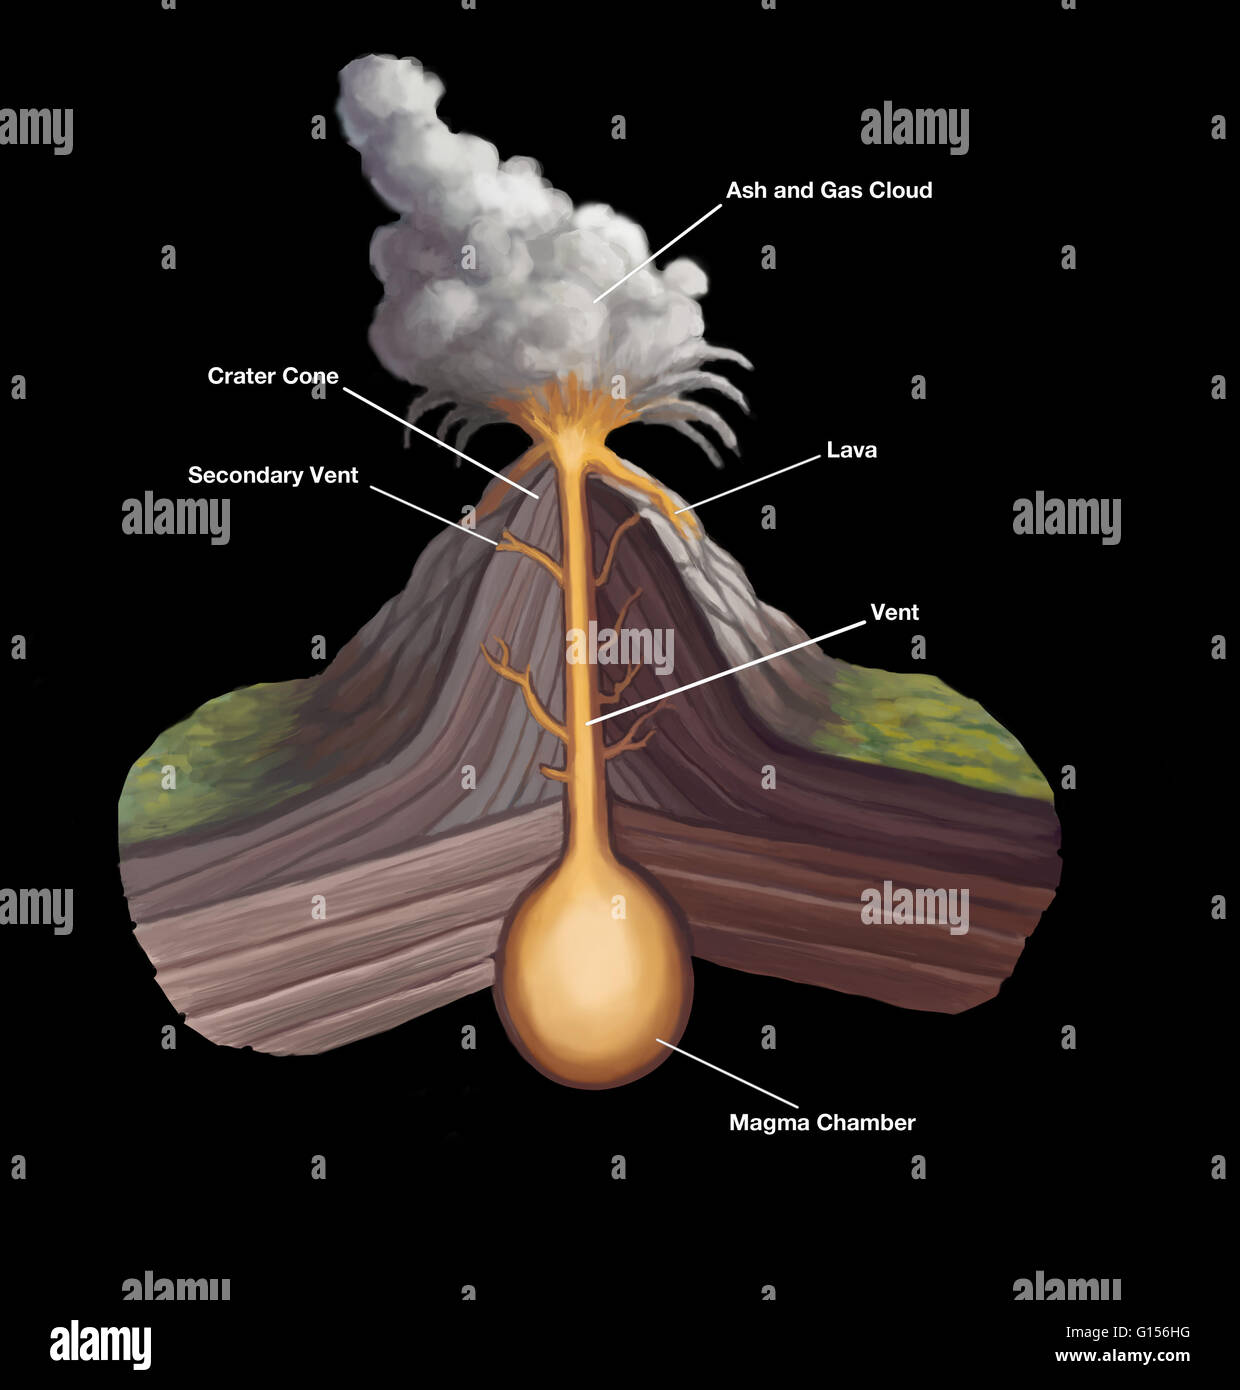 Illustration Of The Volcanic Structure A Volcano Is An